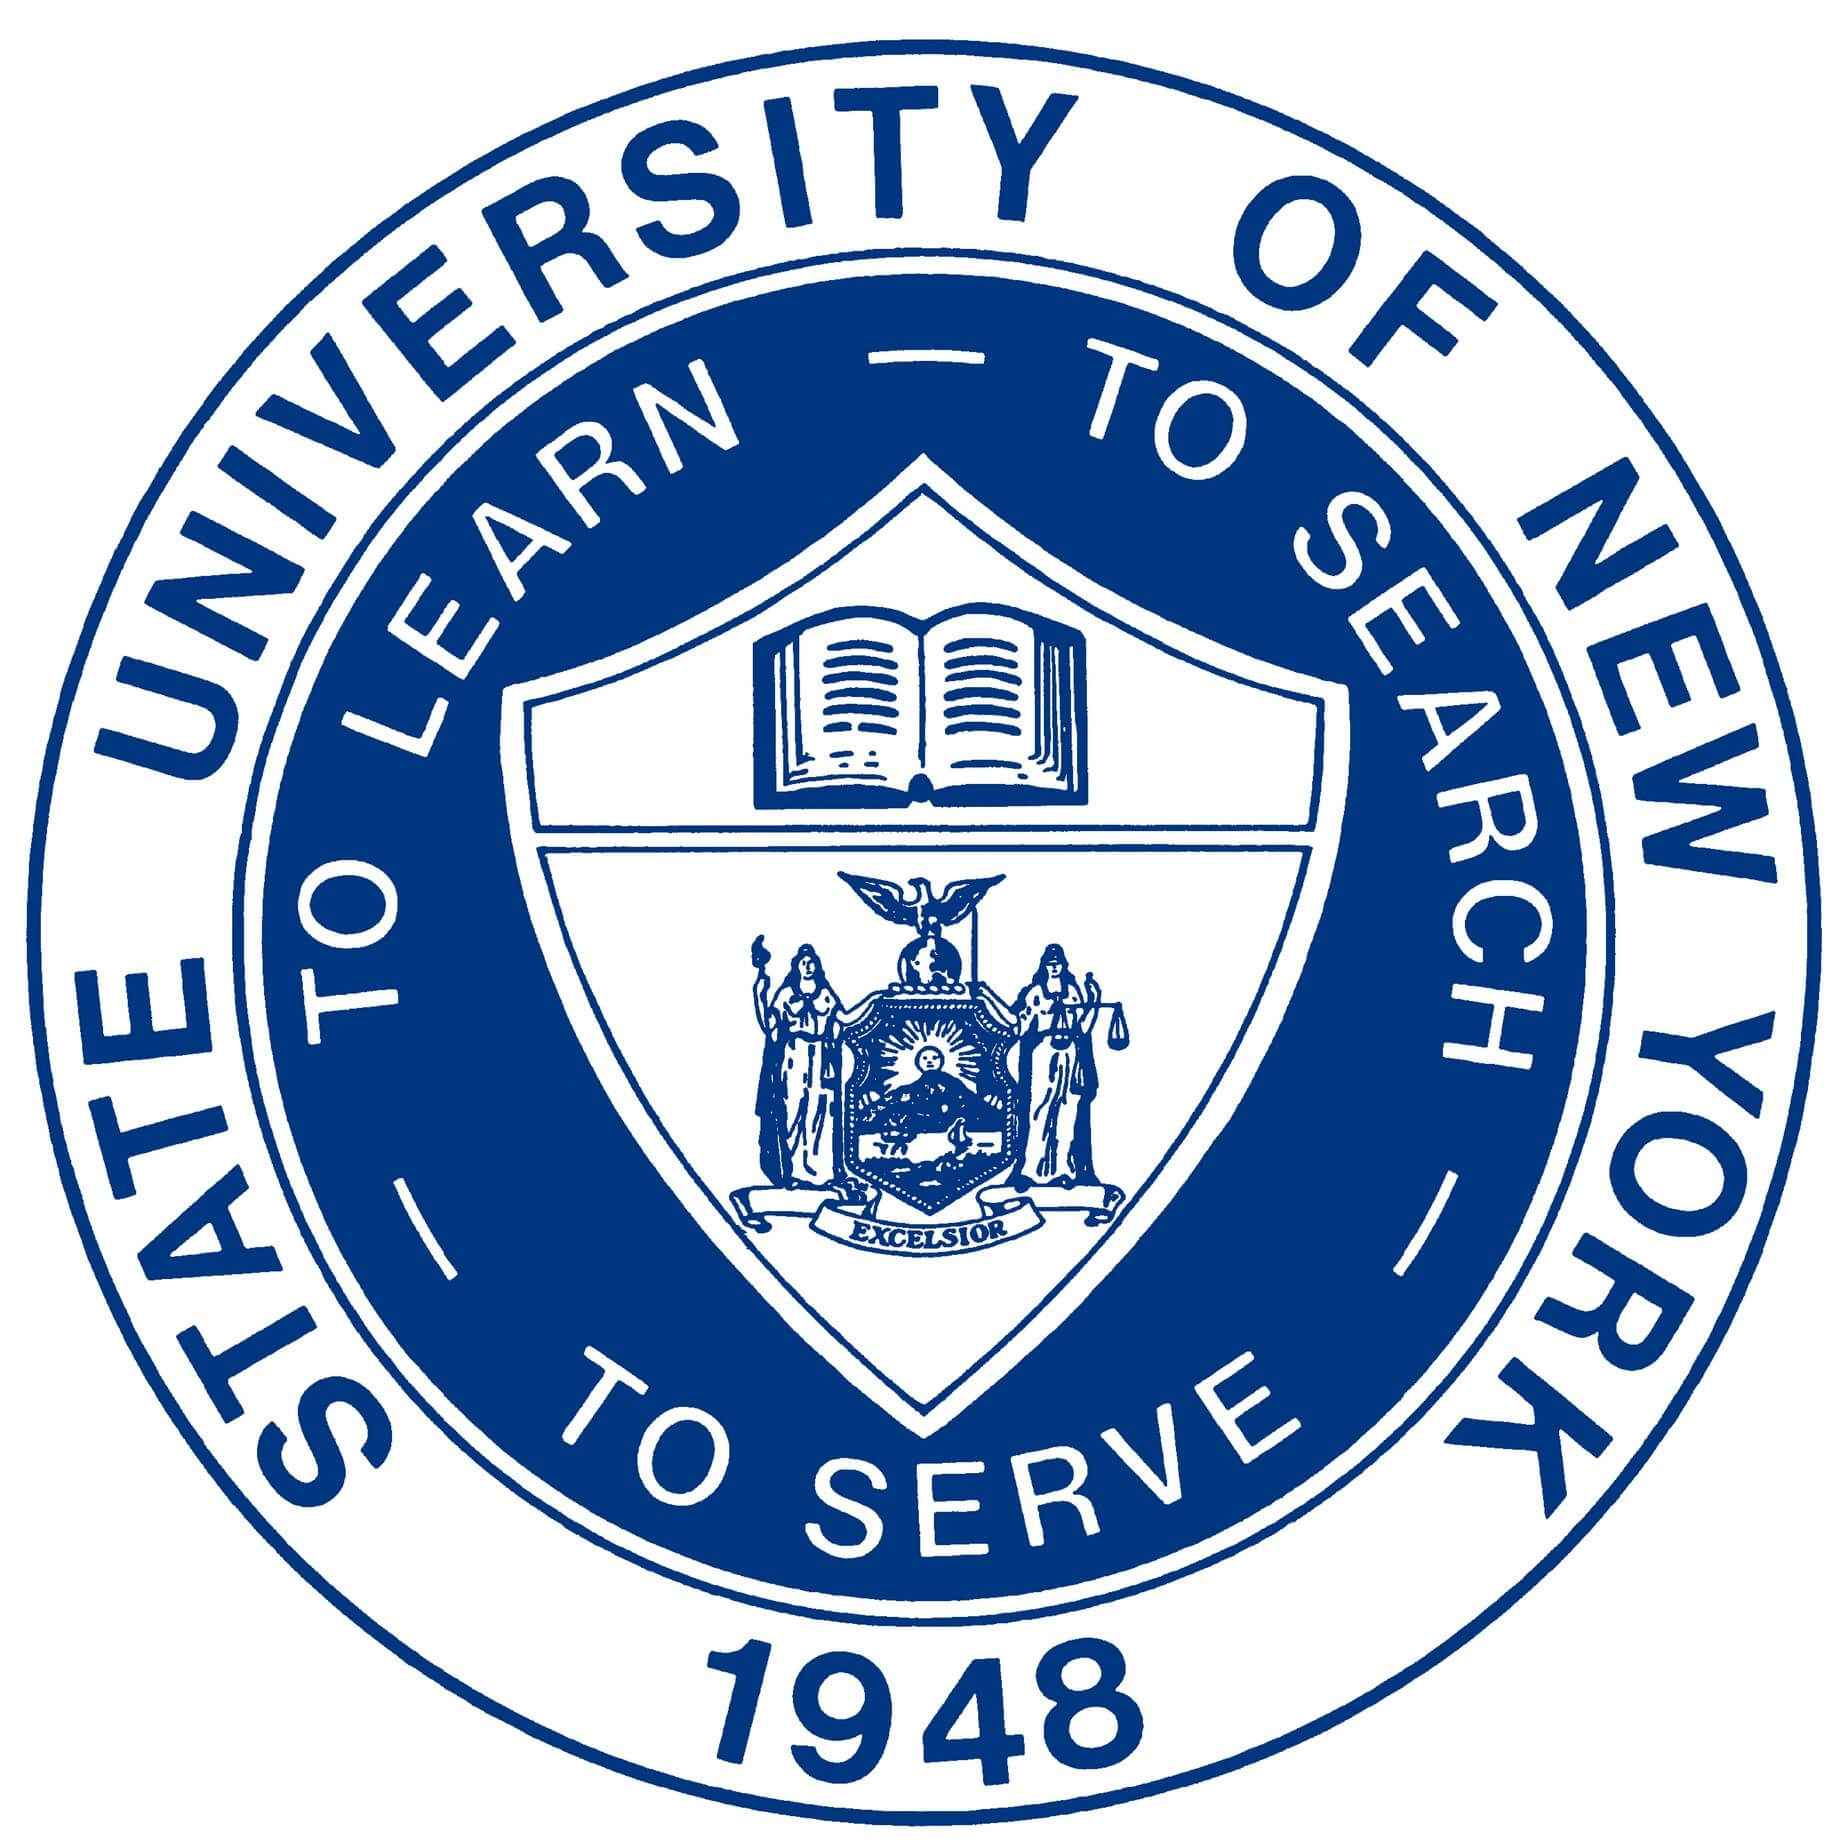 SUNY Logo (State University of New York)